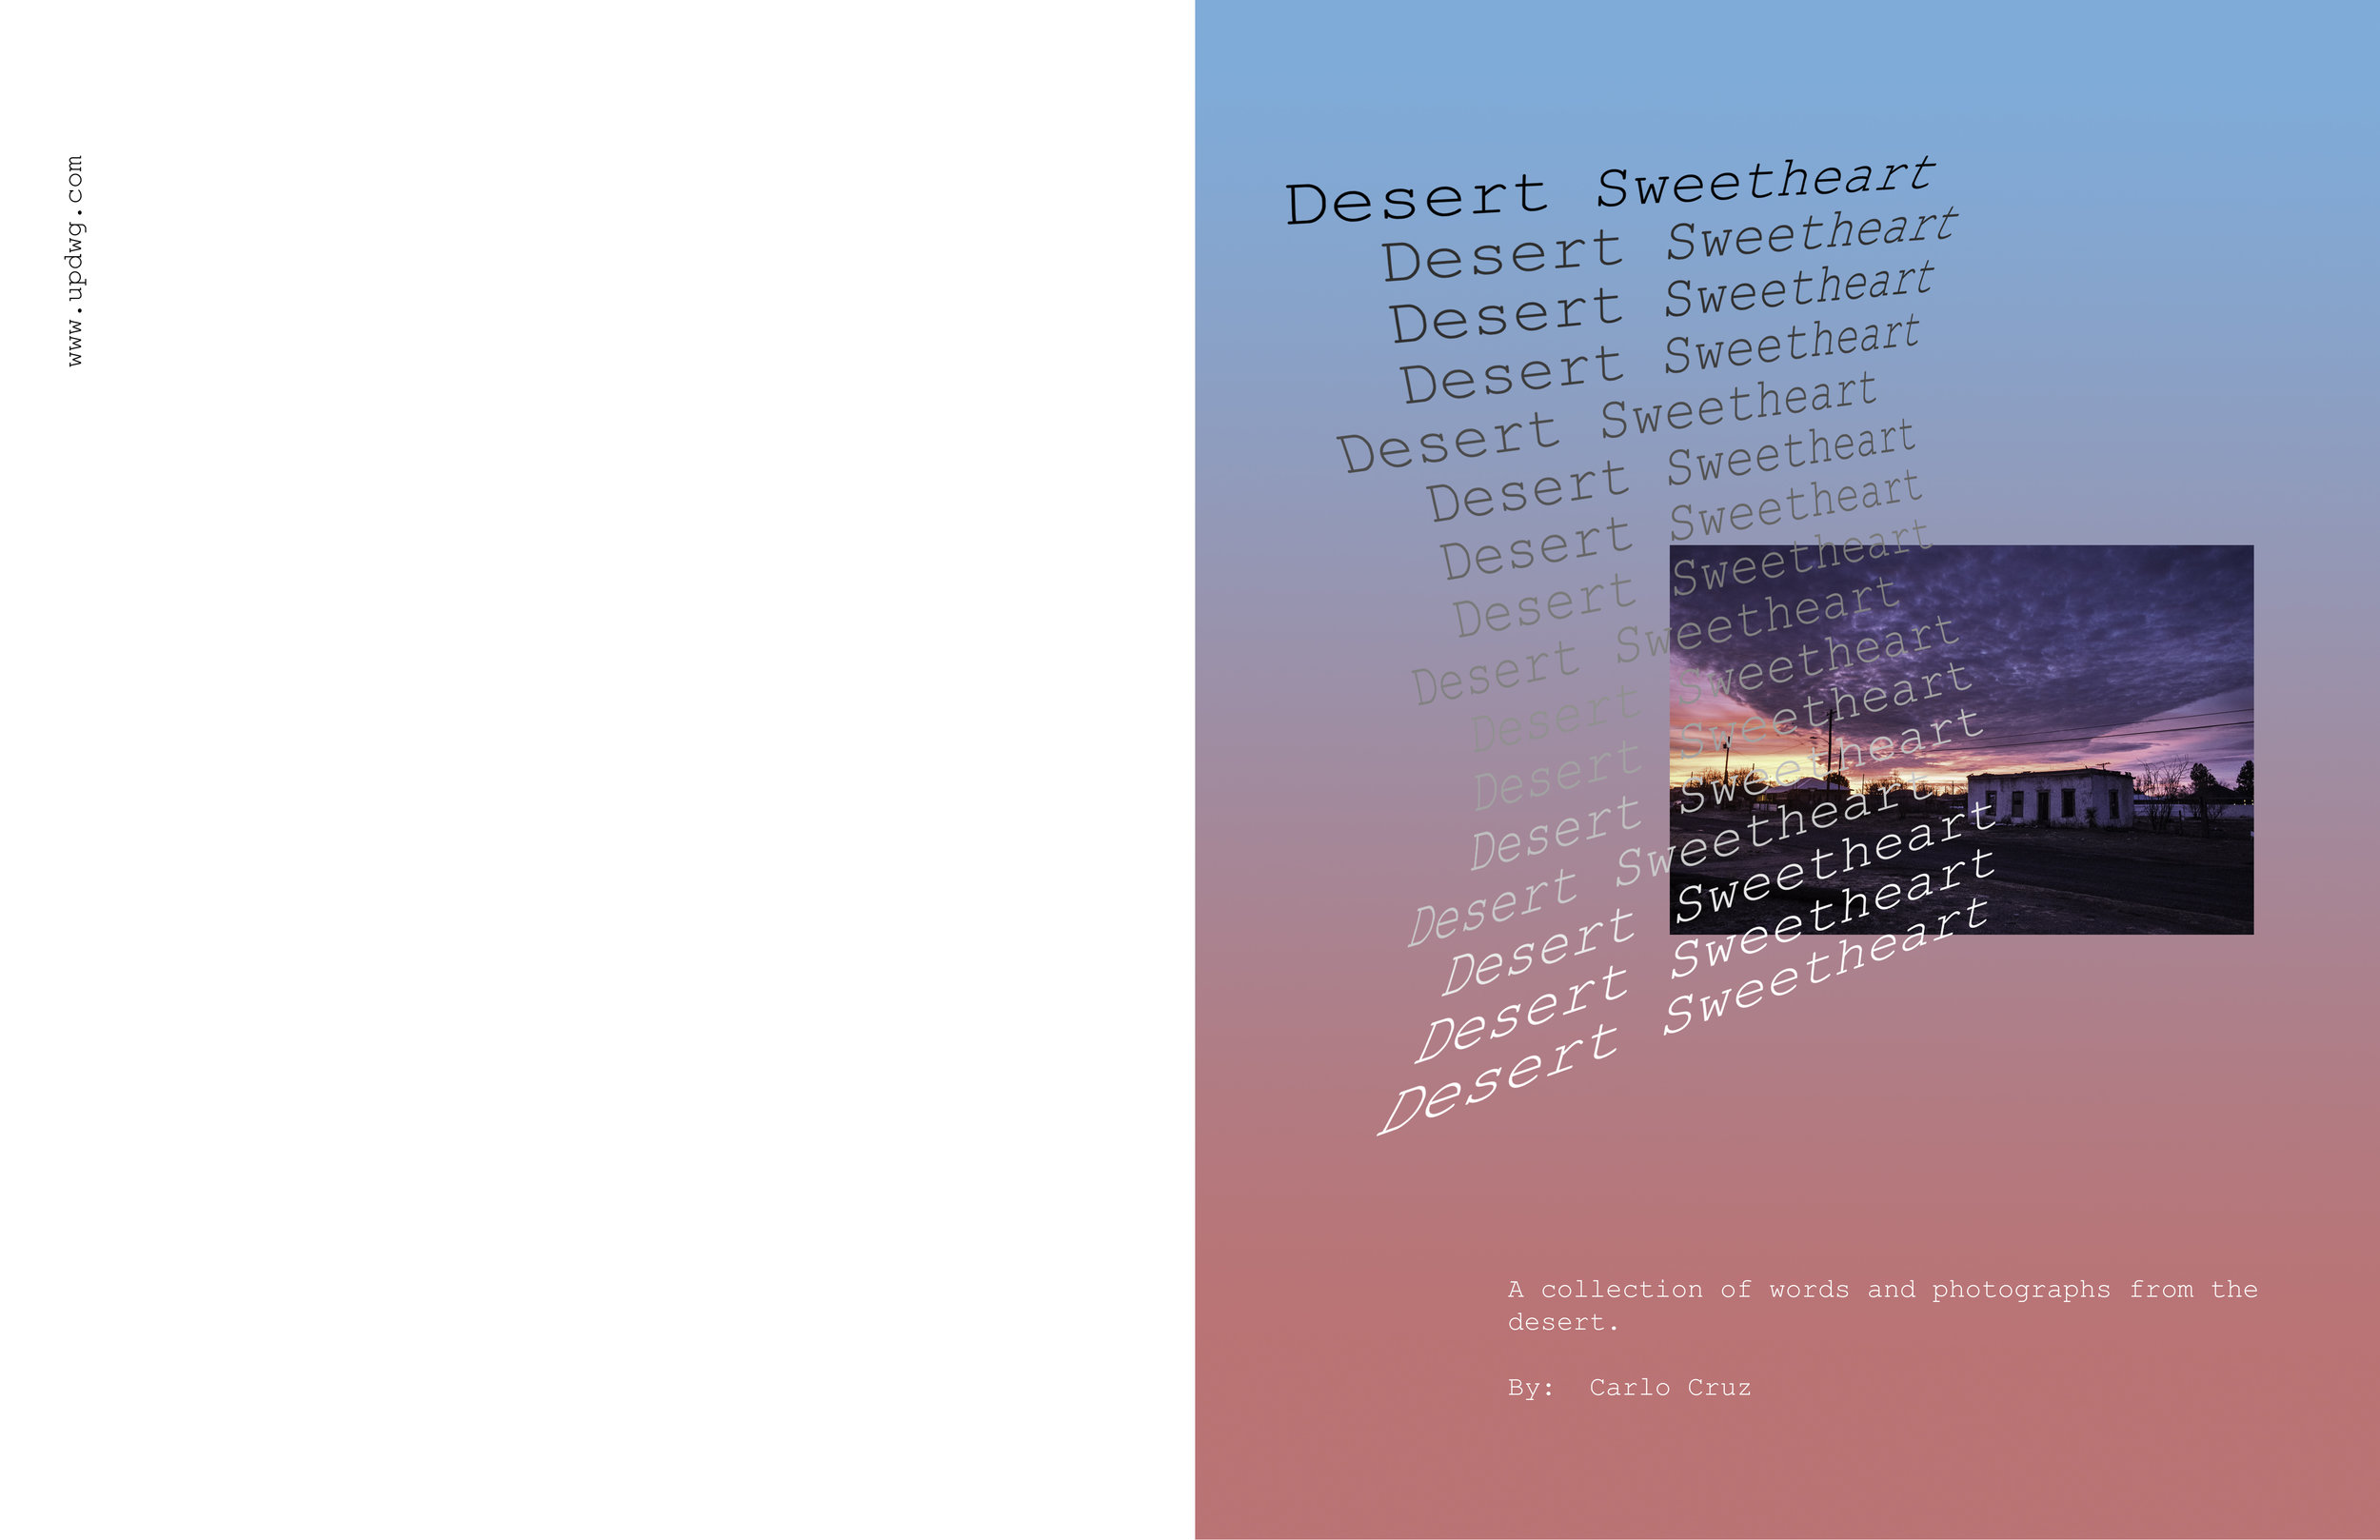 desert sweetheart - draft 1.jpg